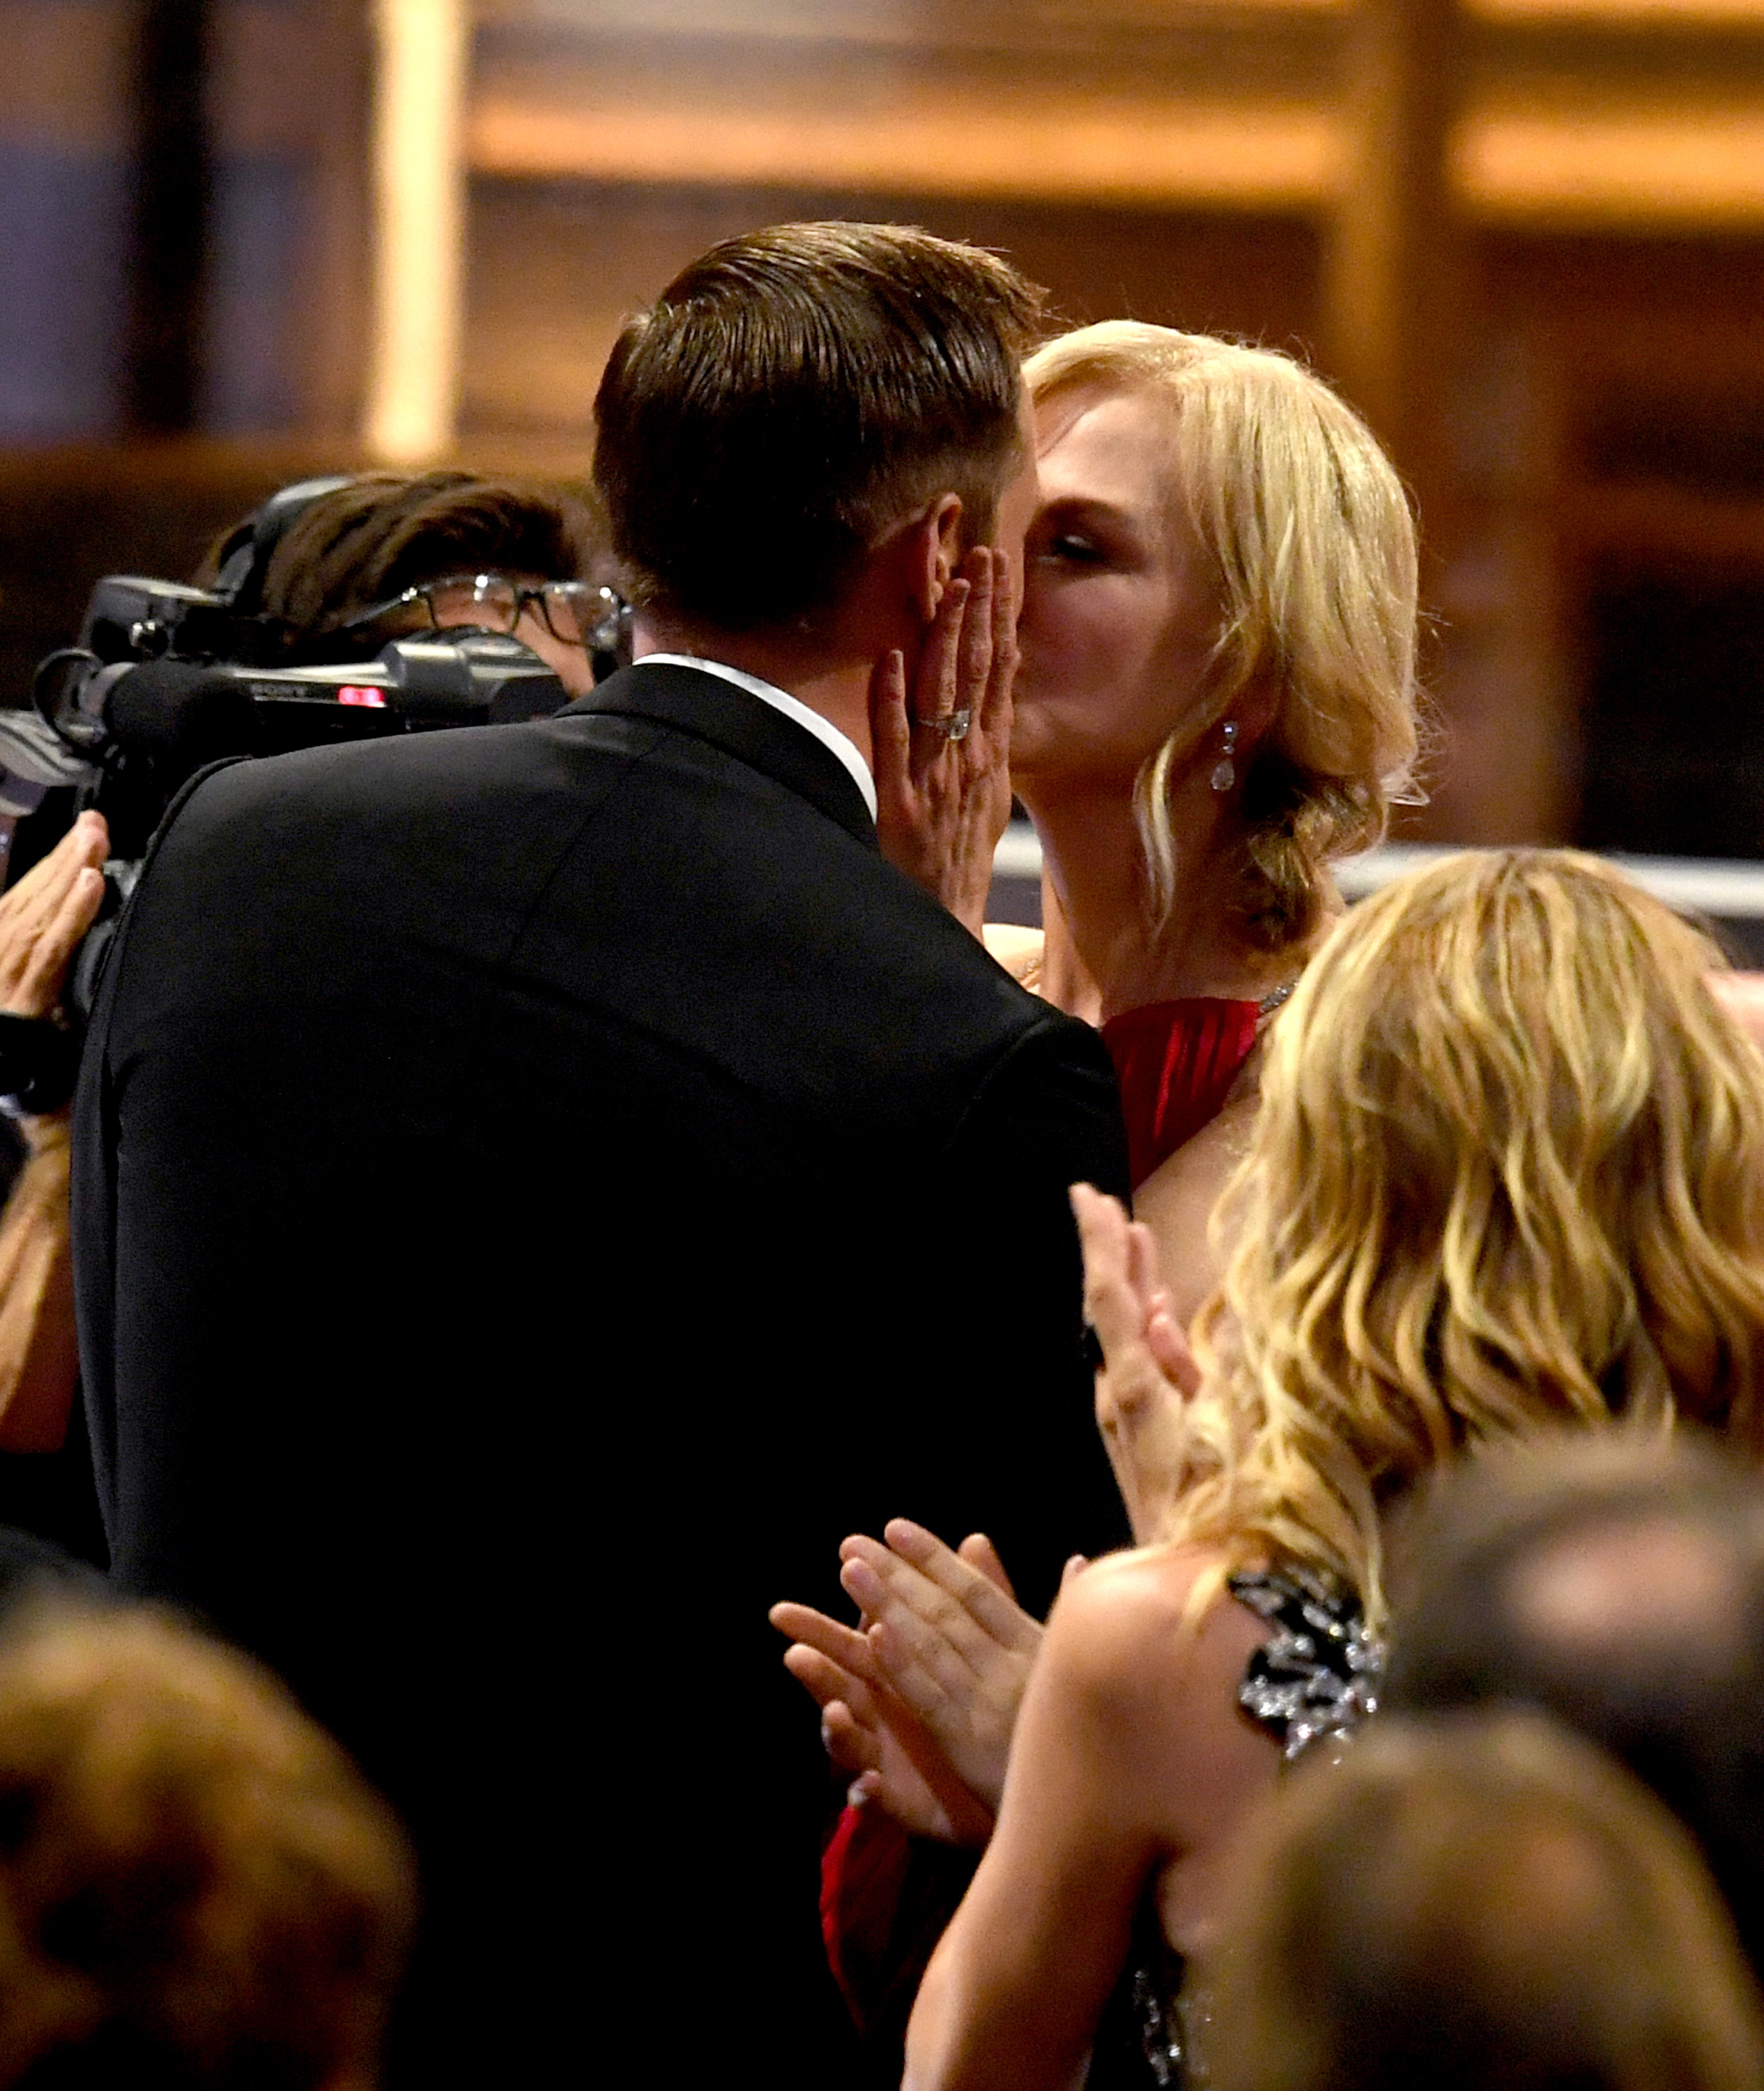 LOS ANGELES, CA - SEPTEMBER 17:  Actor Alexander Skarsgard kisses actress Nicole Kidman as he goes to accept Outstanding Supporting Actor in a Limited Serier or Movie for  Big Little Lies  with actor during the 69th Annual Primetime Emmy Awards at Microsoft Theater on September 17, 2017 in Los Angeles, California.  (Photo by Kevin Winter/Getty Images)